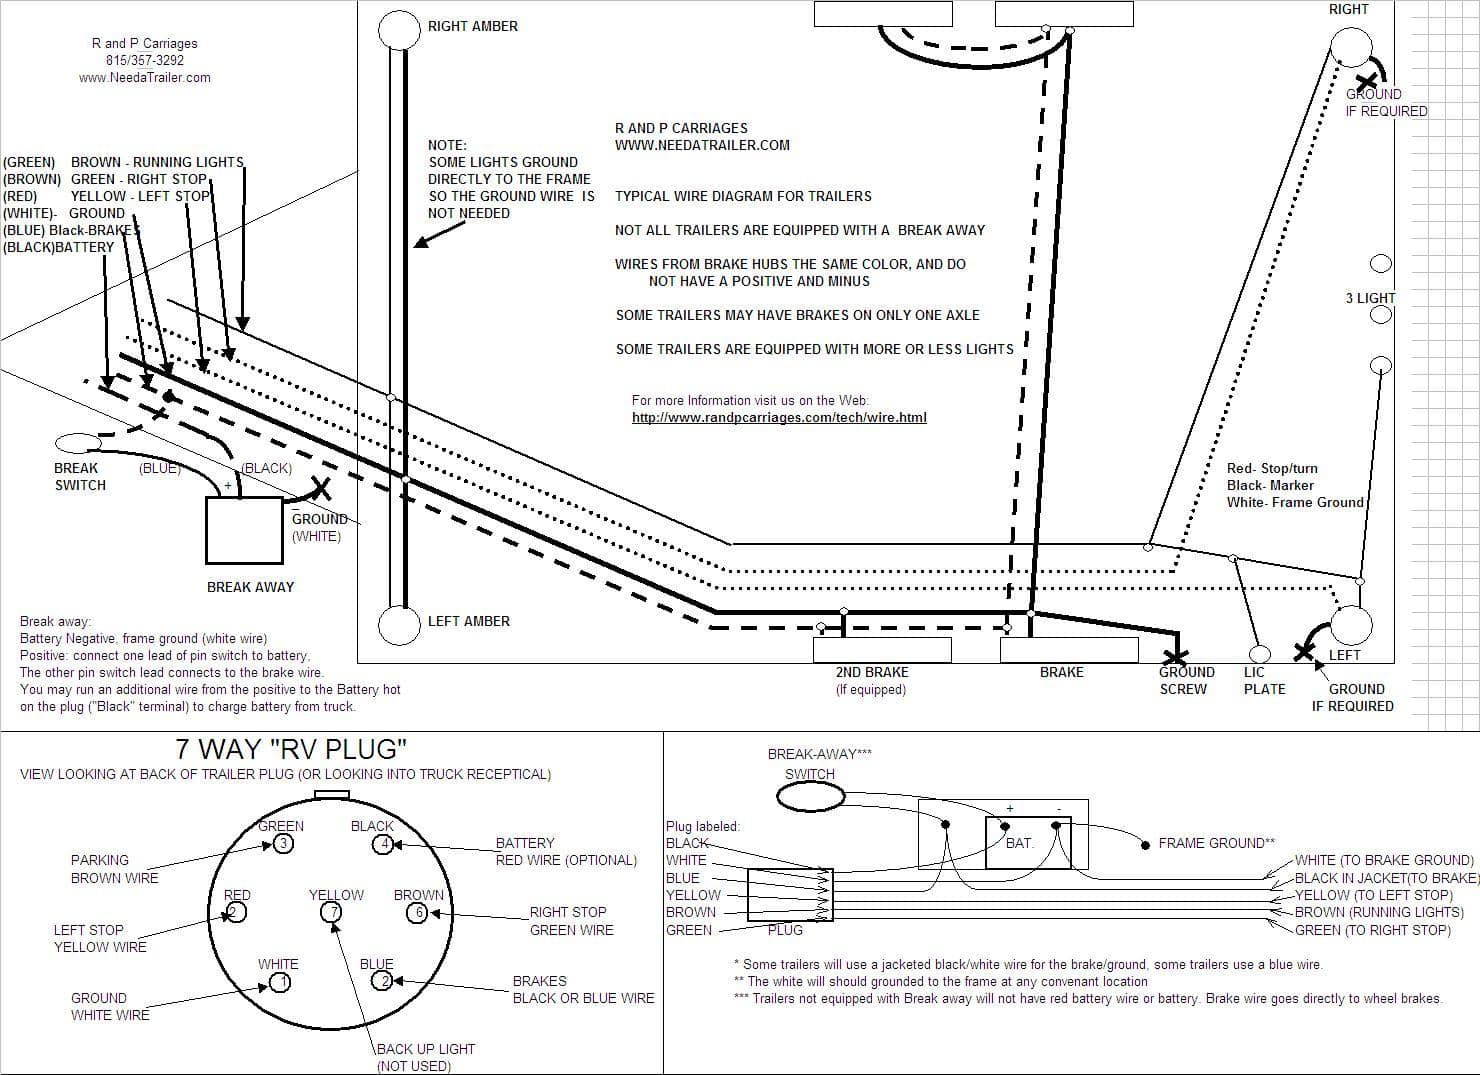 7 Way Plug Information   R And P Carriages   Cargo, Utility, Dump - Wiring Diagram For A Trailer Plug